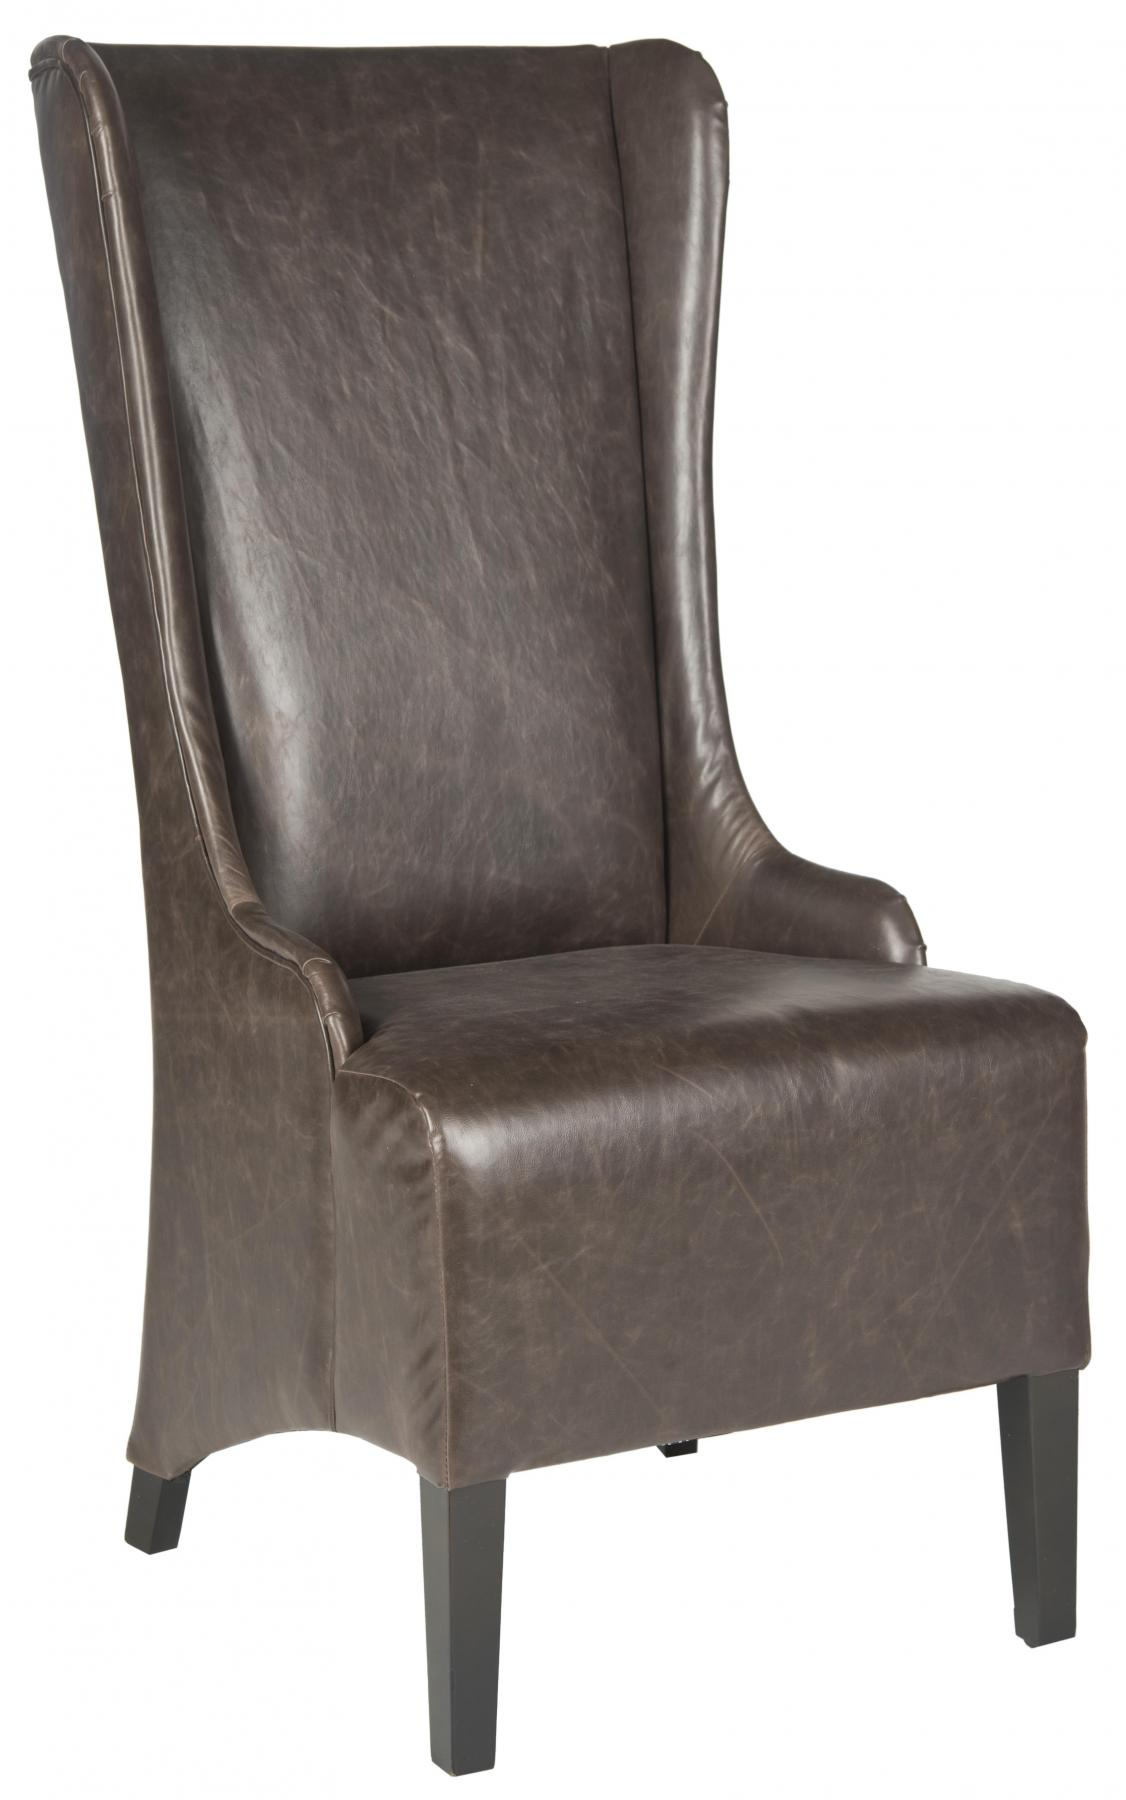 Safavieh - MCR4501N BACALL DINING CHAIR - ANTIQUE BROWN